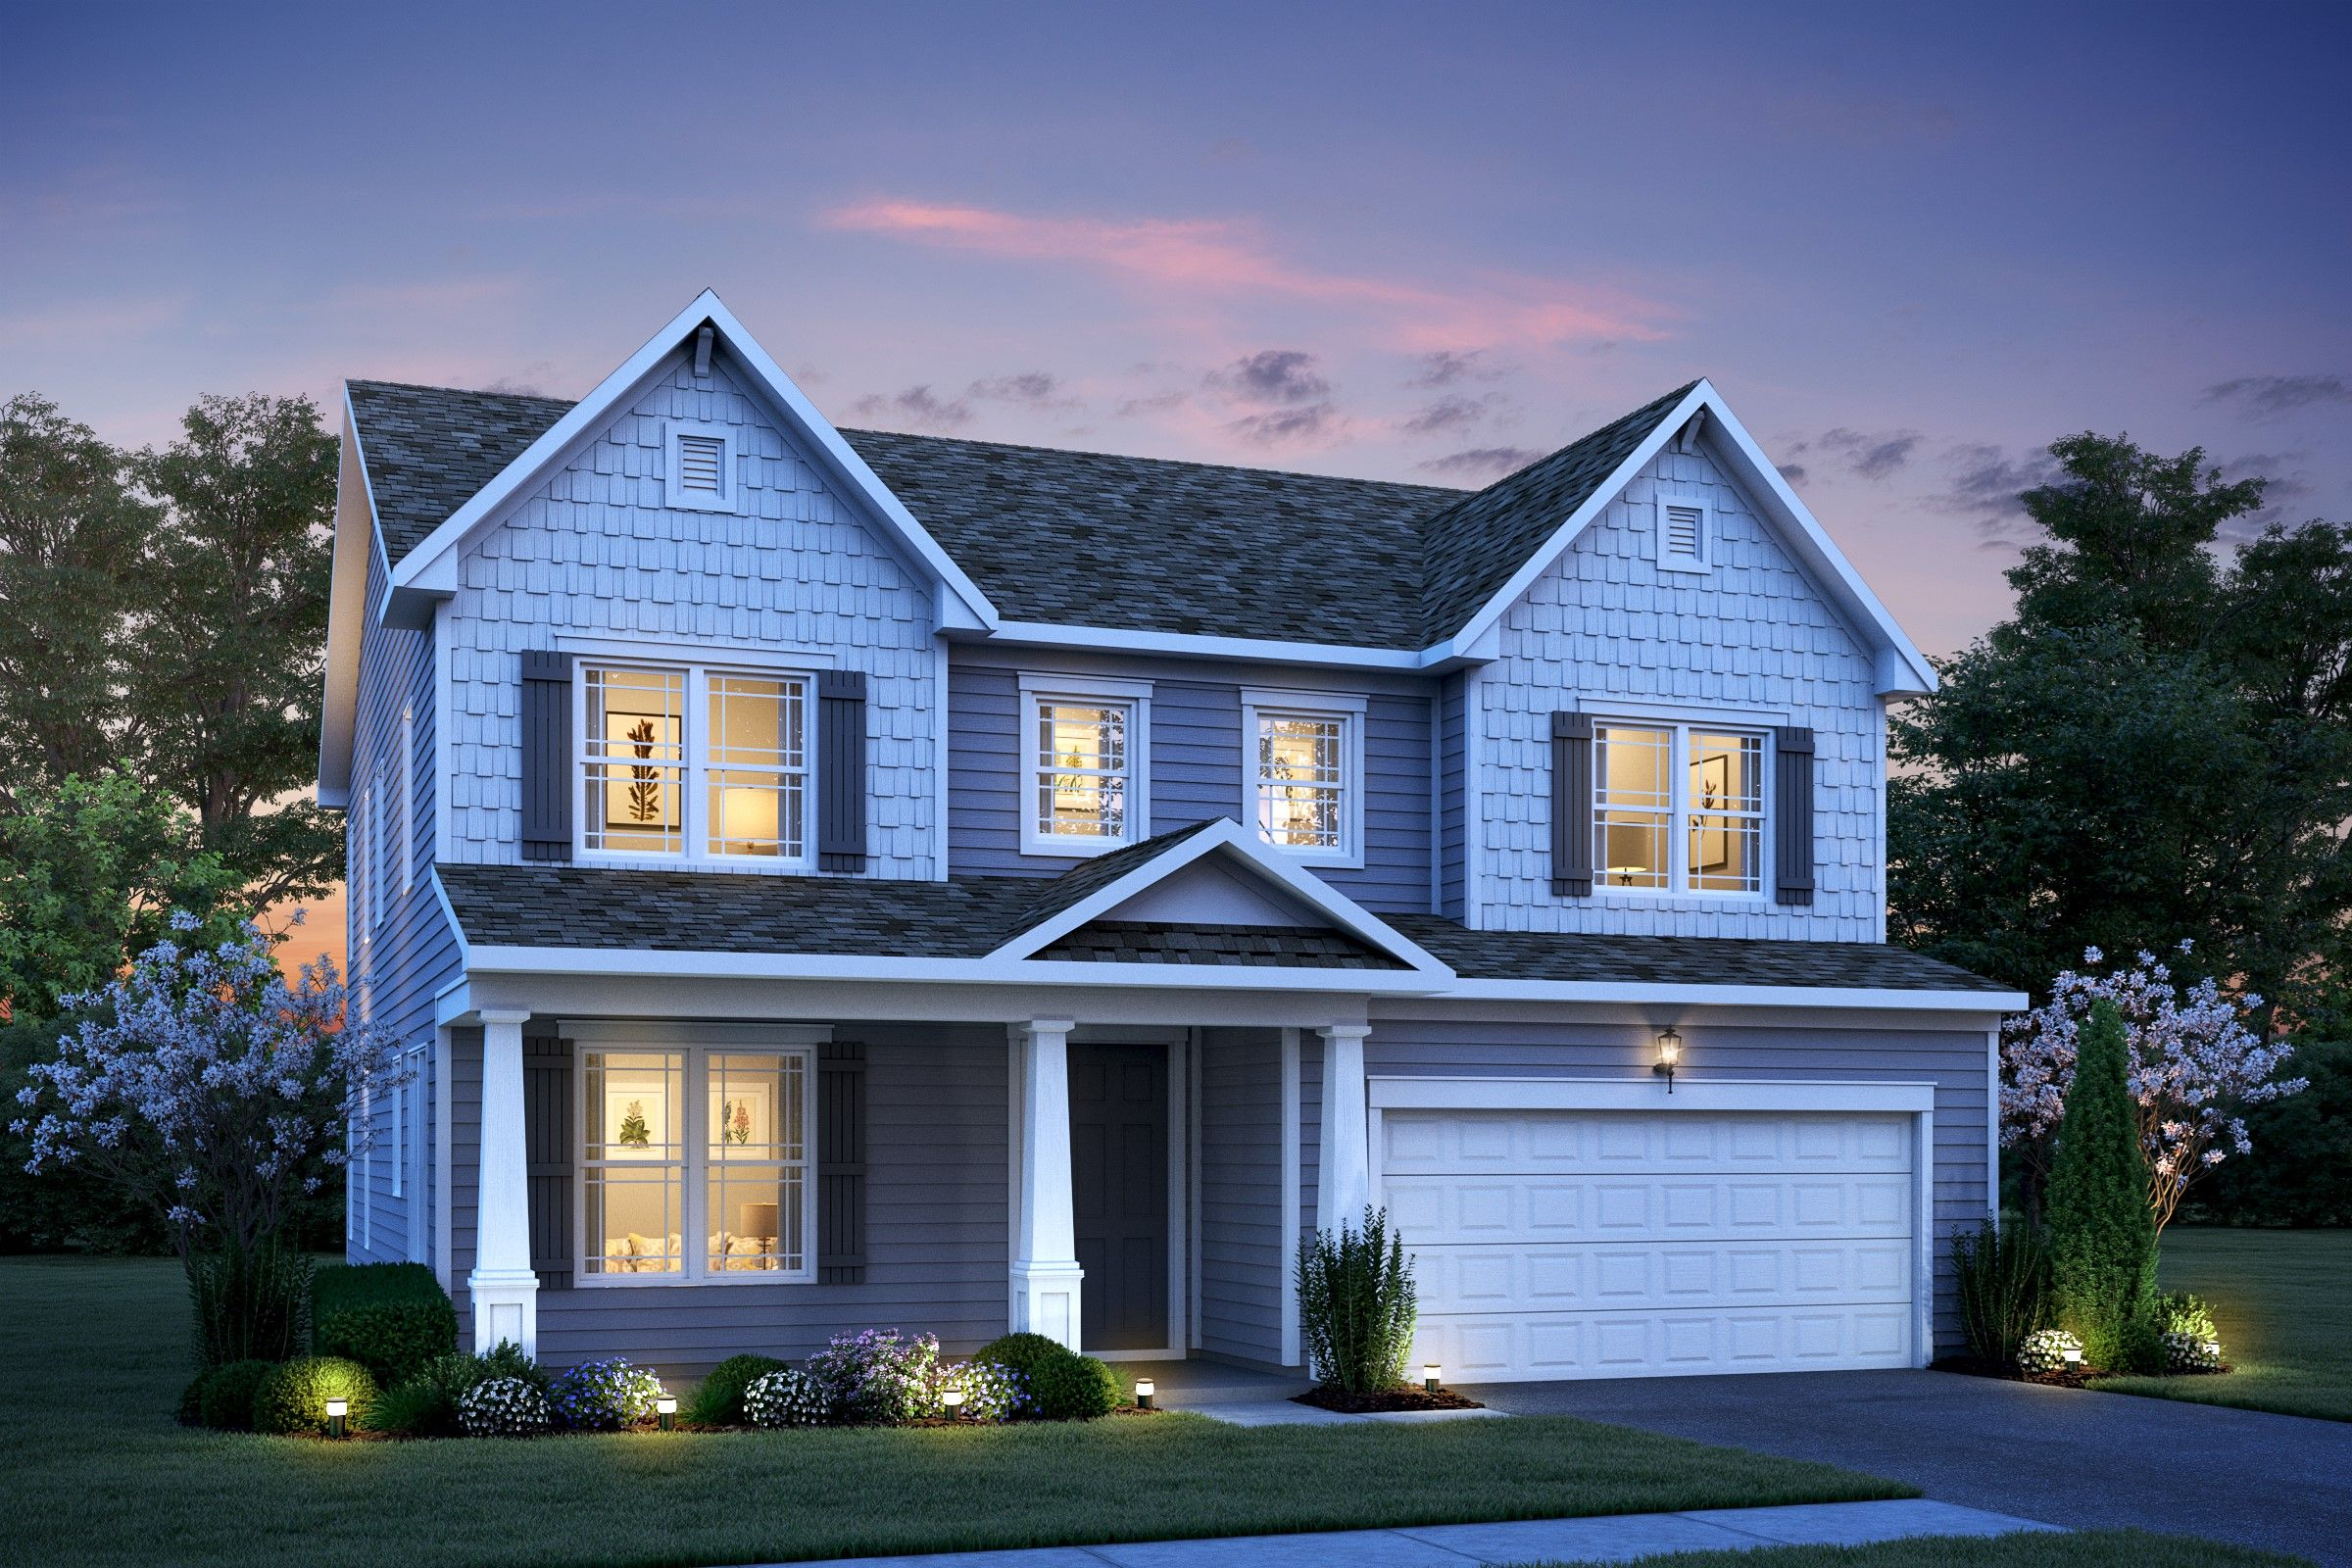 Single Family for Active at Meadow Brook At Hillsborough - Lexington Ii Passe Court Hillsborough, New Jersey 08844 United States